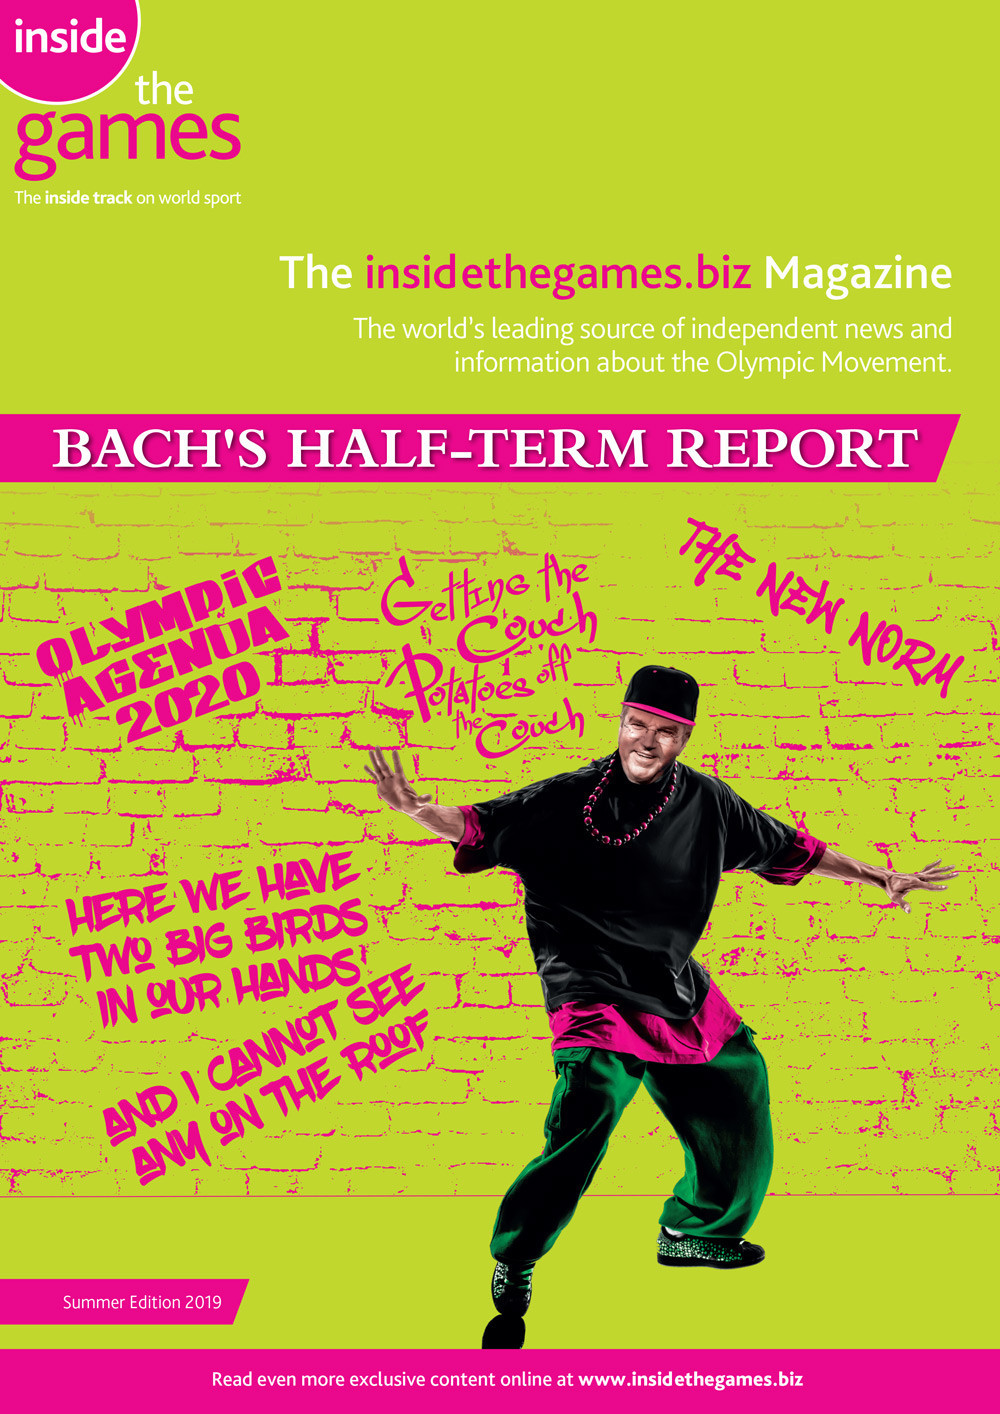 The insidethegames.biz Magazine Summer Edition 2019